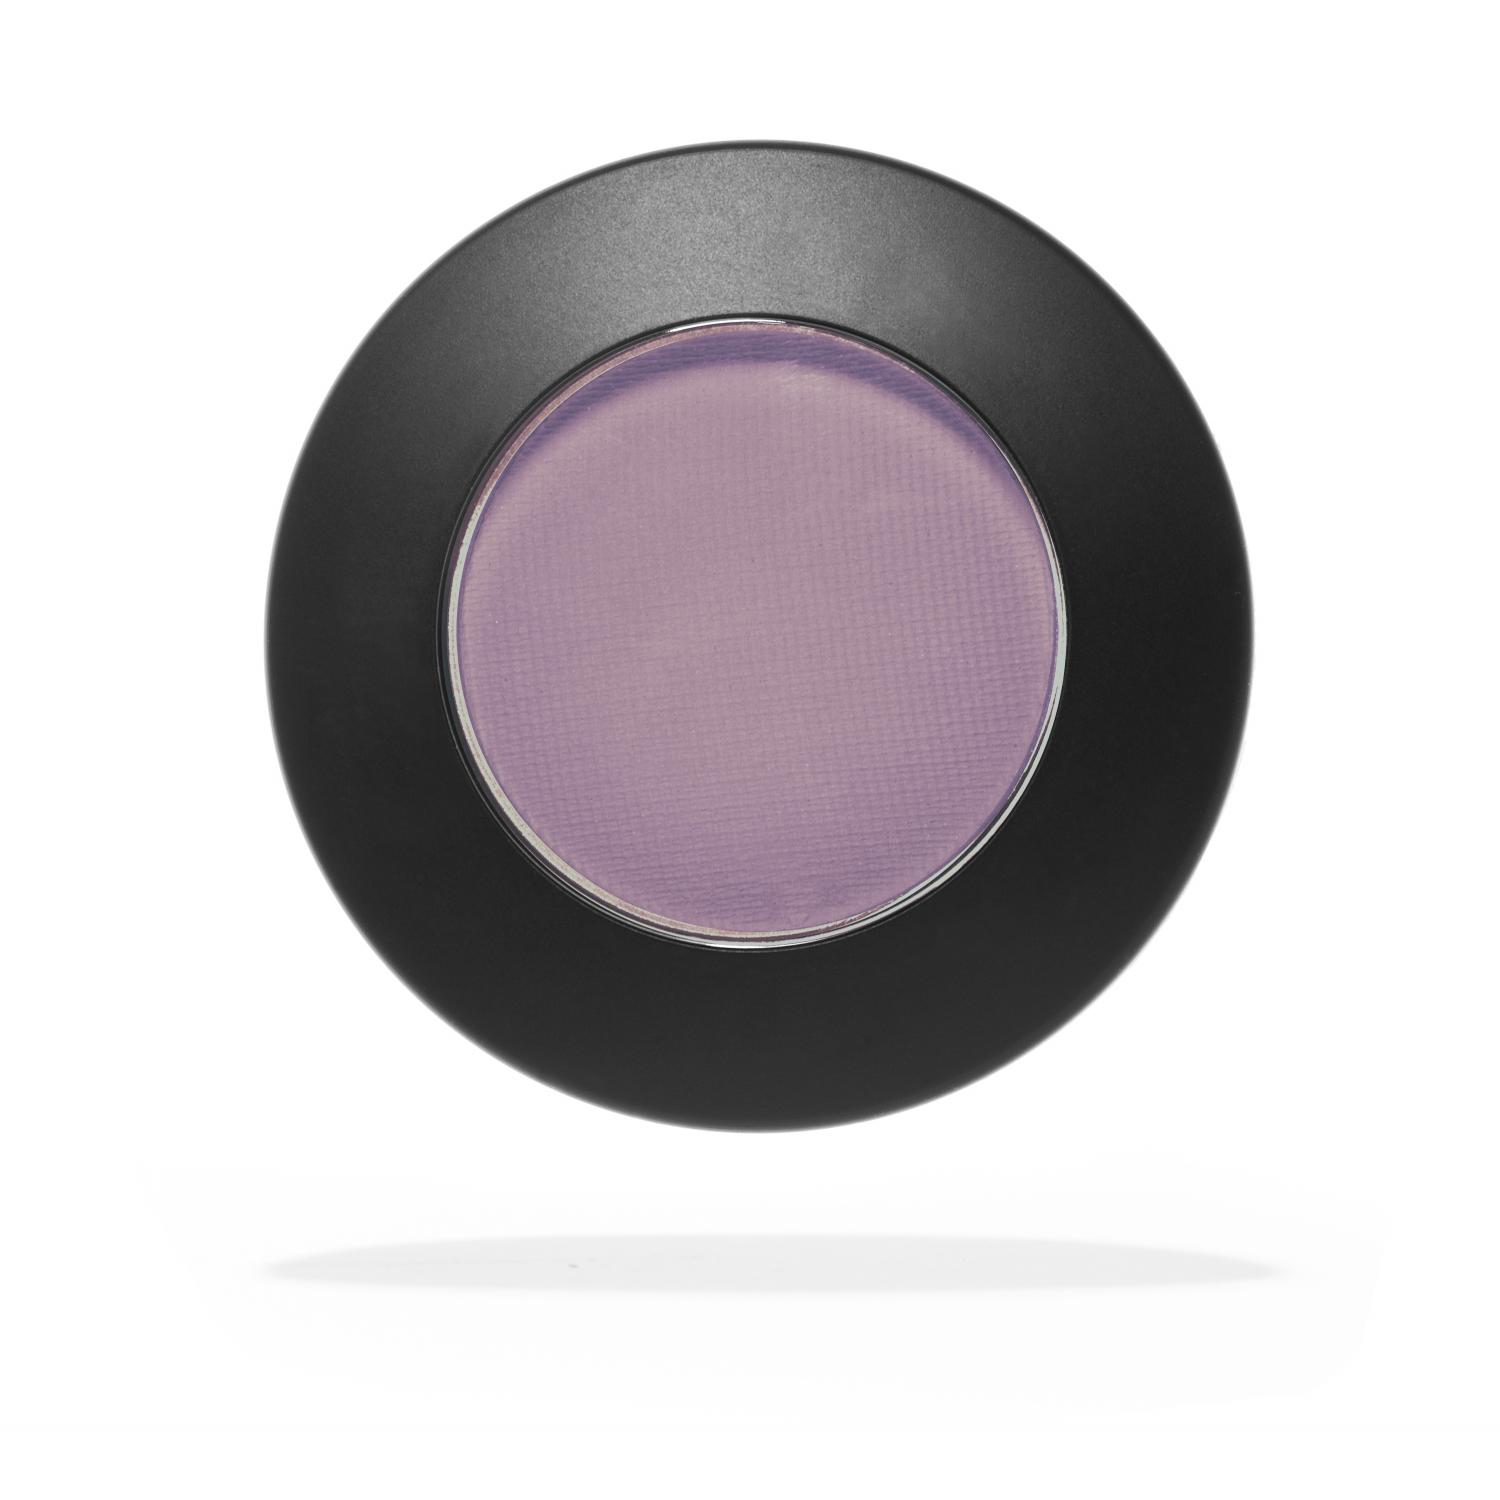 PENN - MICRONIZED EYE SHADOW